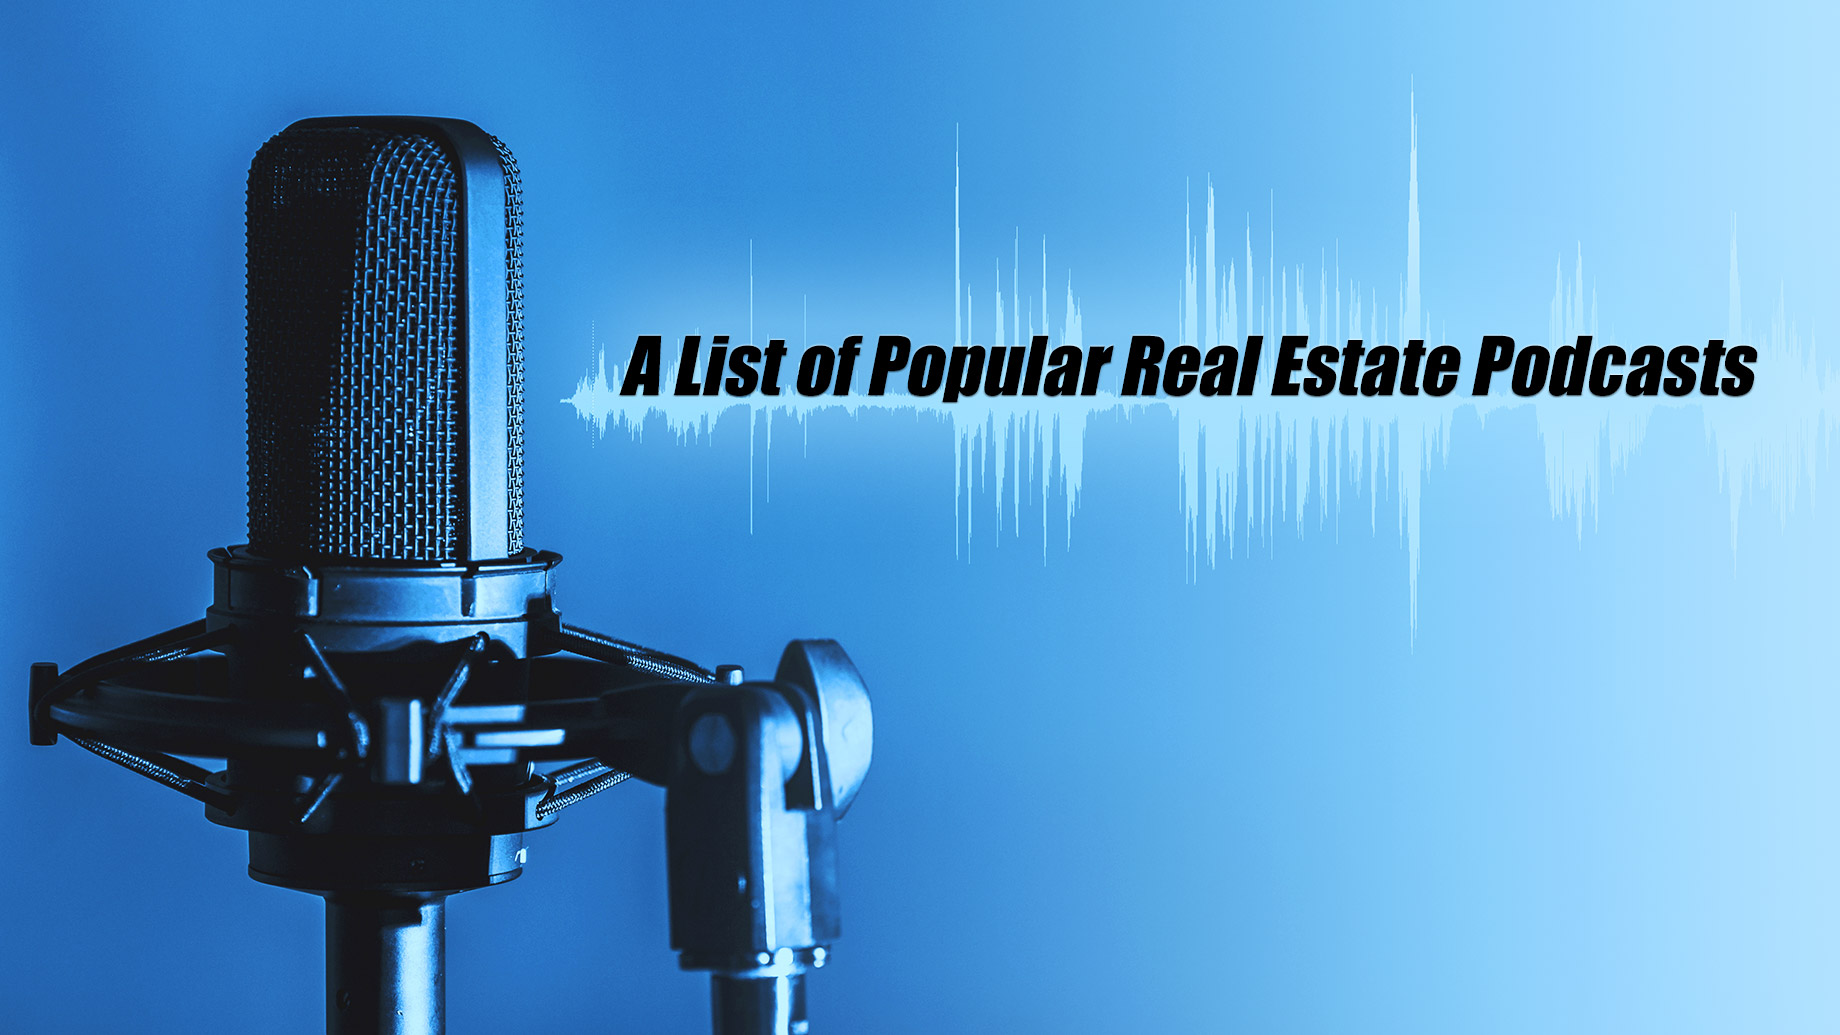 A List of Popular Real Estate Podcasts